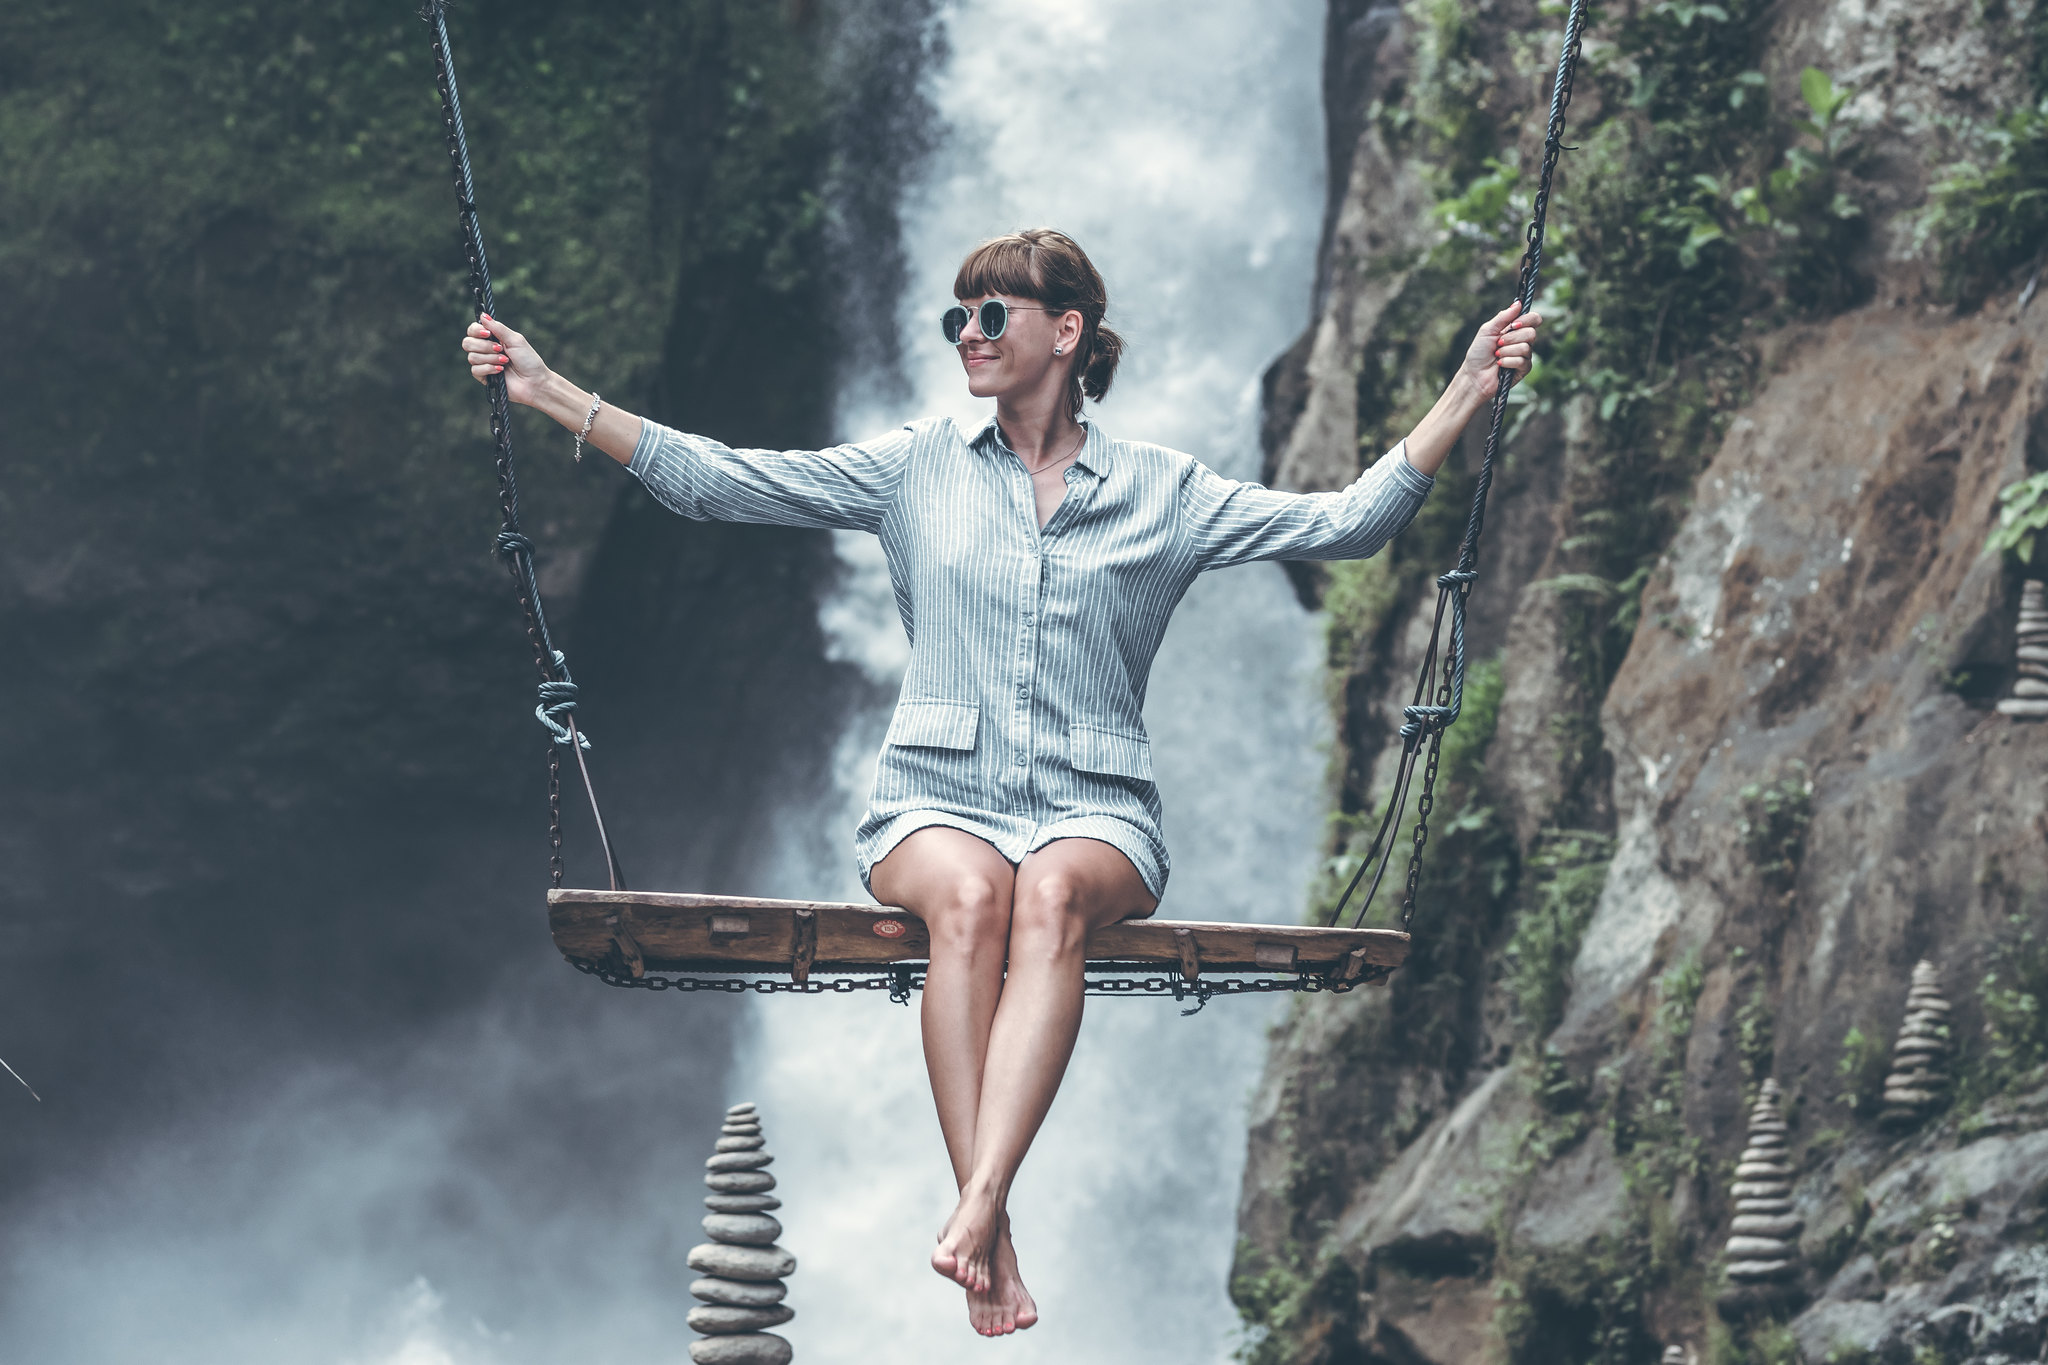 waterfall swing in Bali